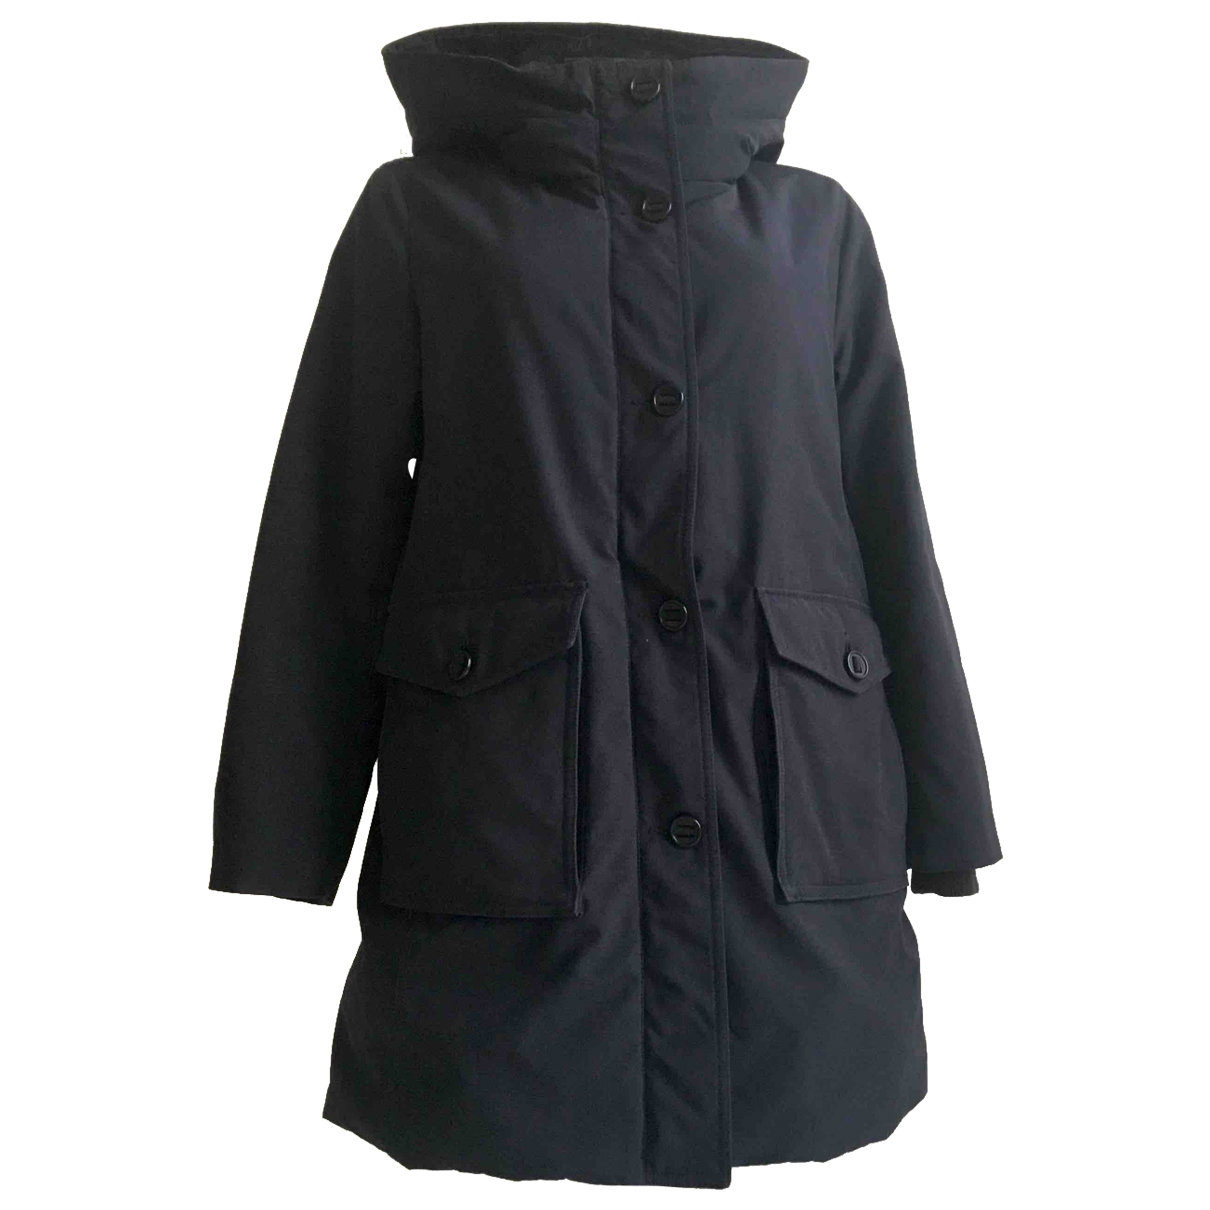 Uniqlo \N Navy coat for Women 42 FR